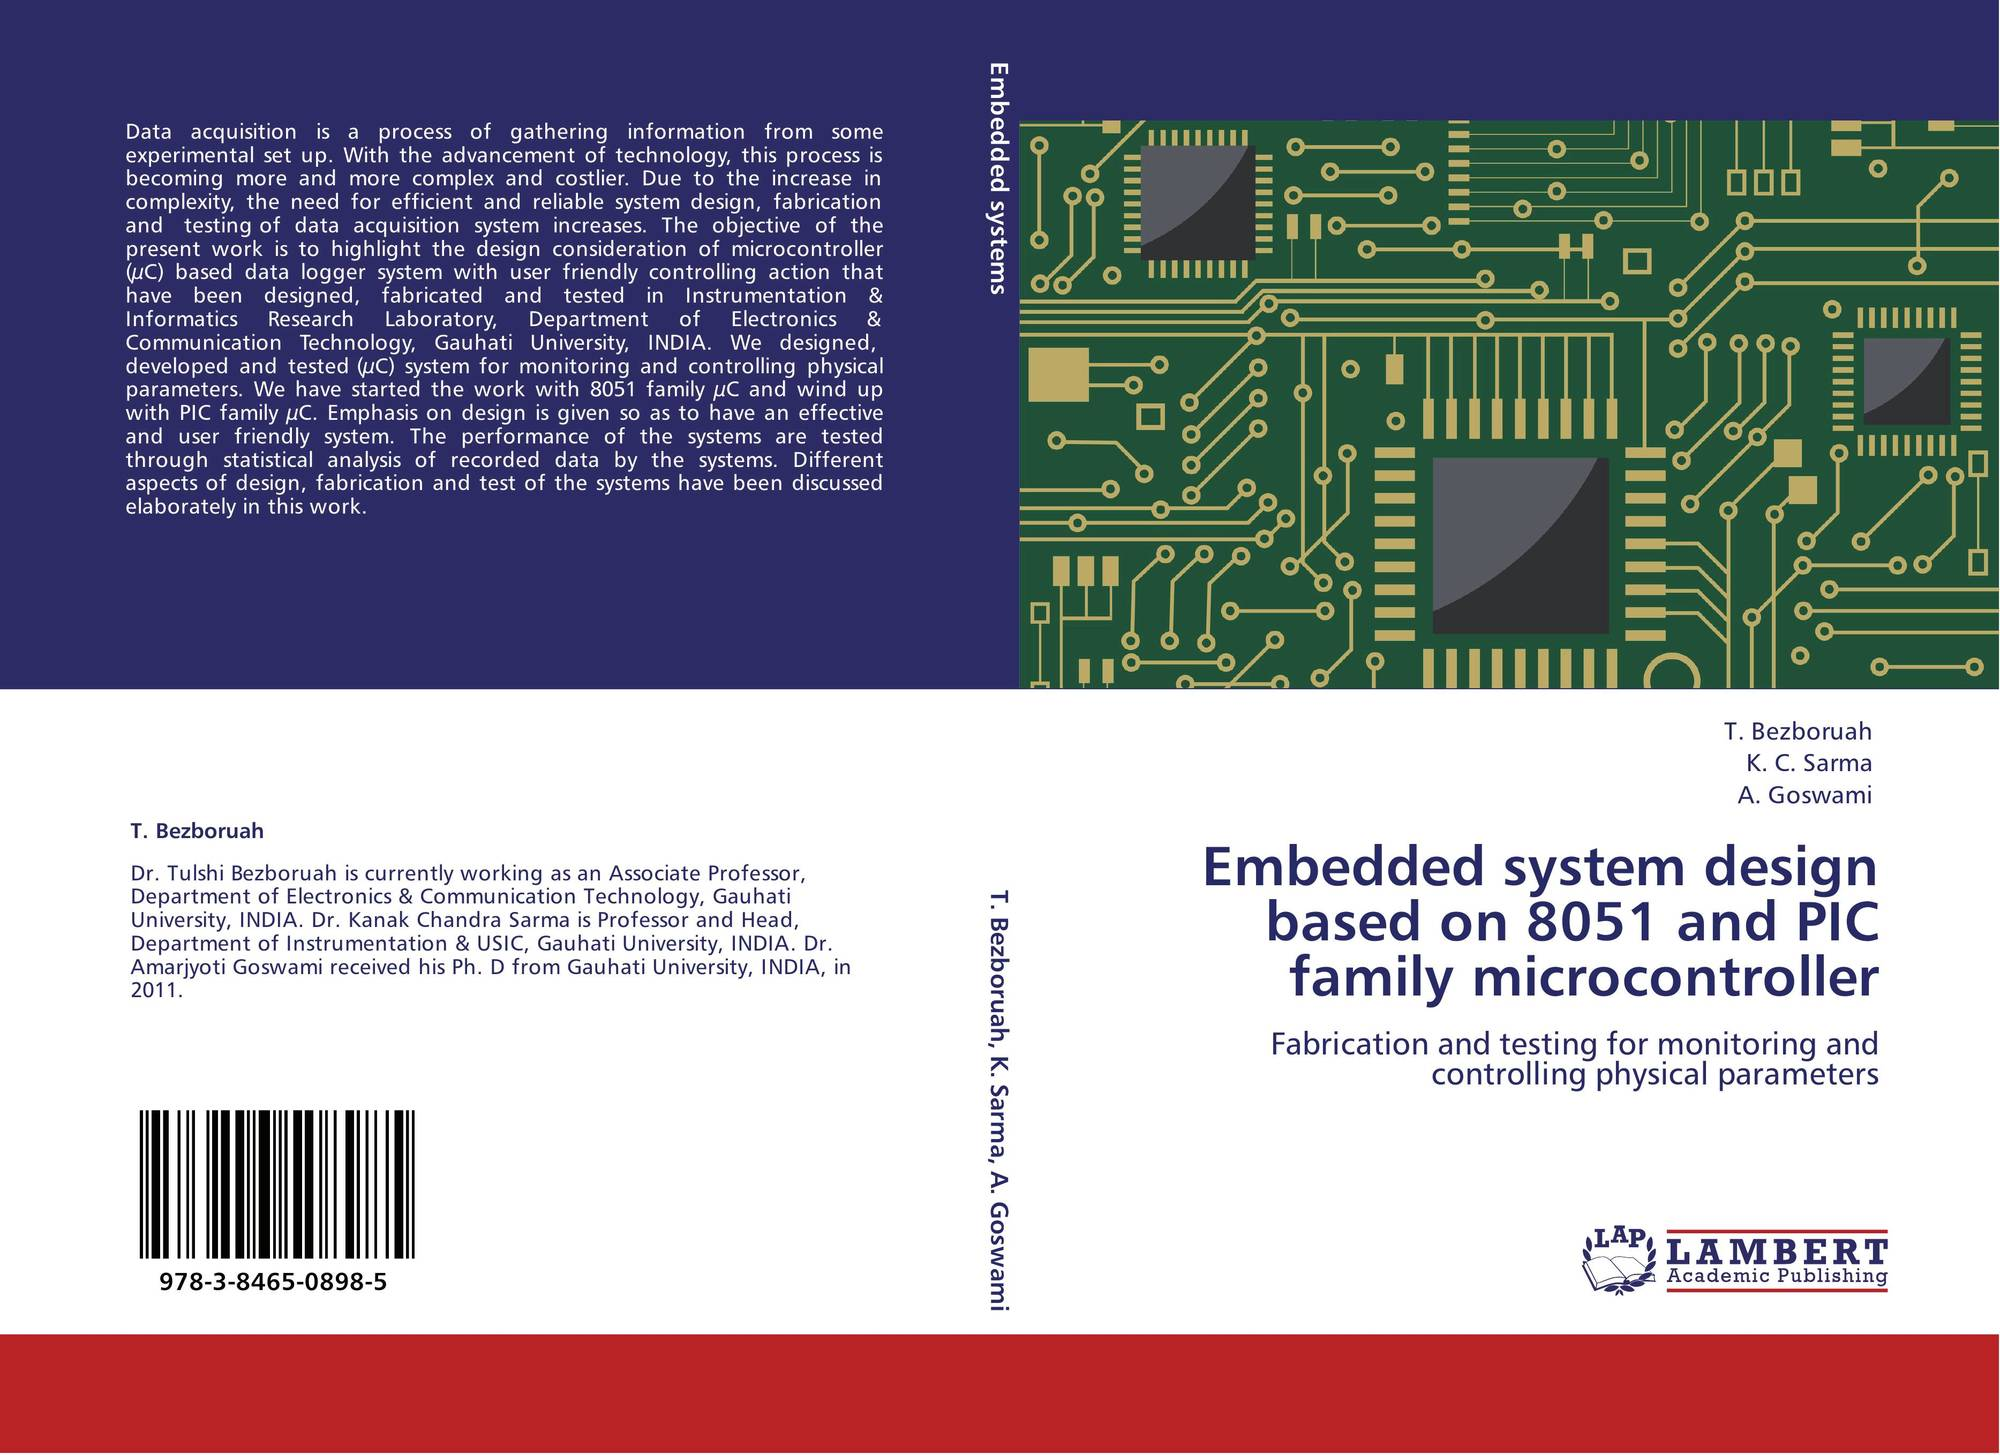 microcontroller based thesis